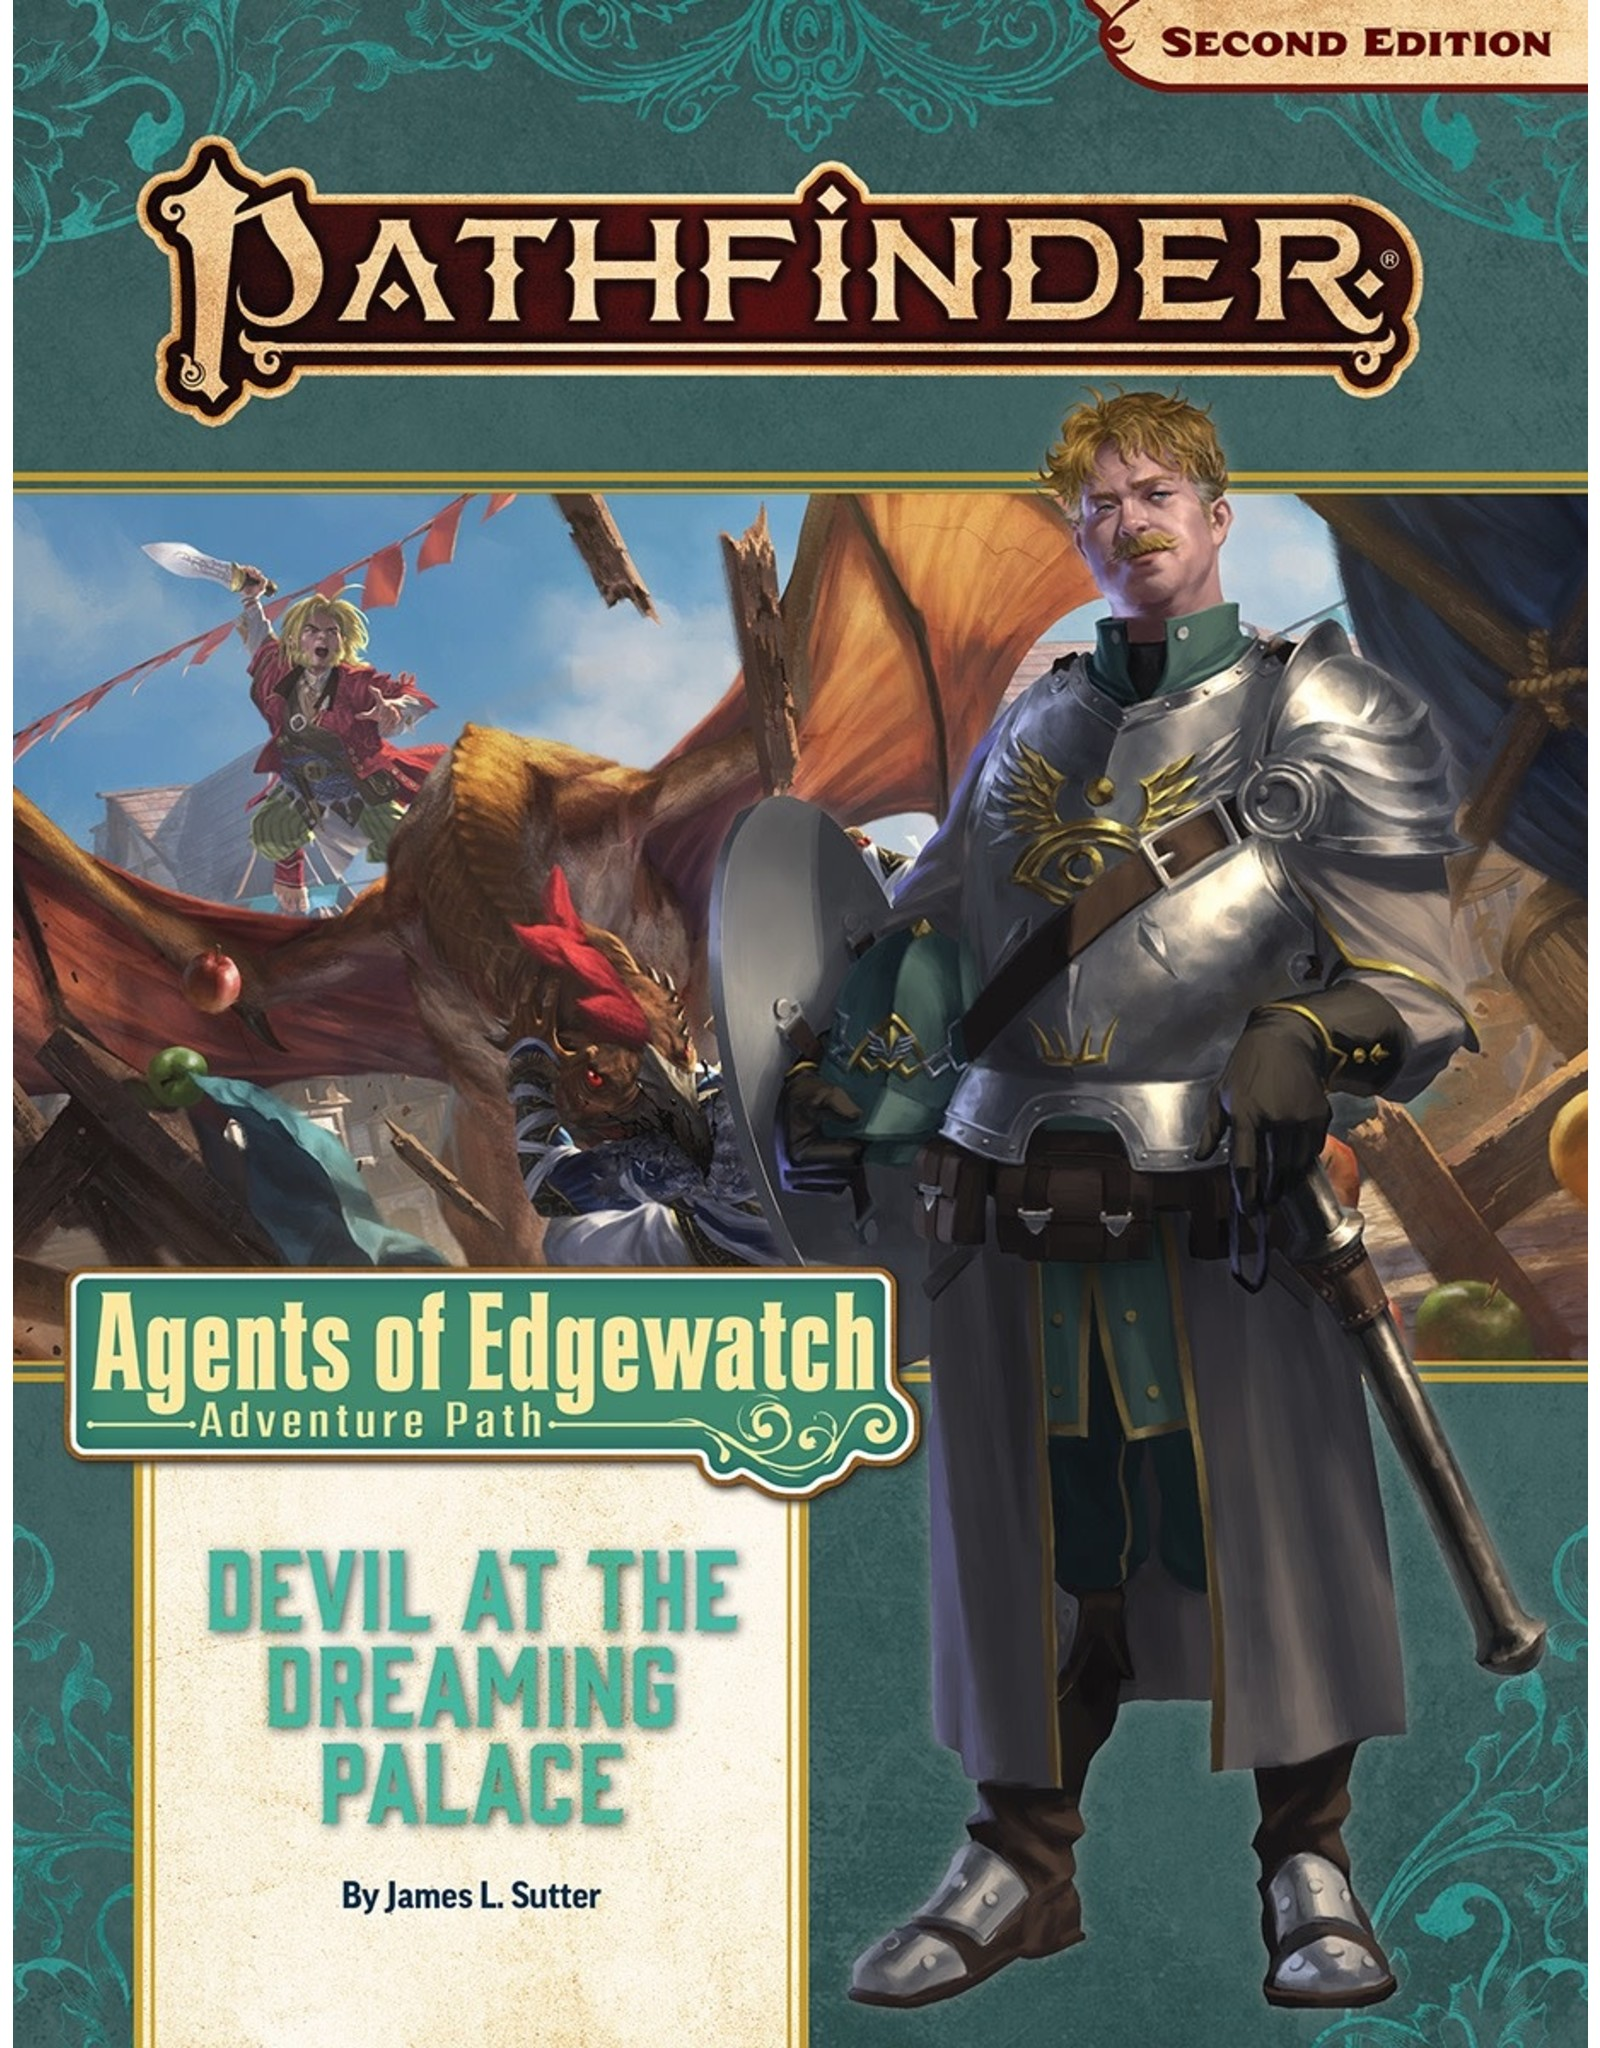 Paizo Pathfinder 2E: Agents of Edgewatch - Devil at the Dreaming Palace (part 1)